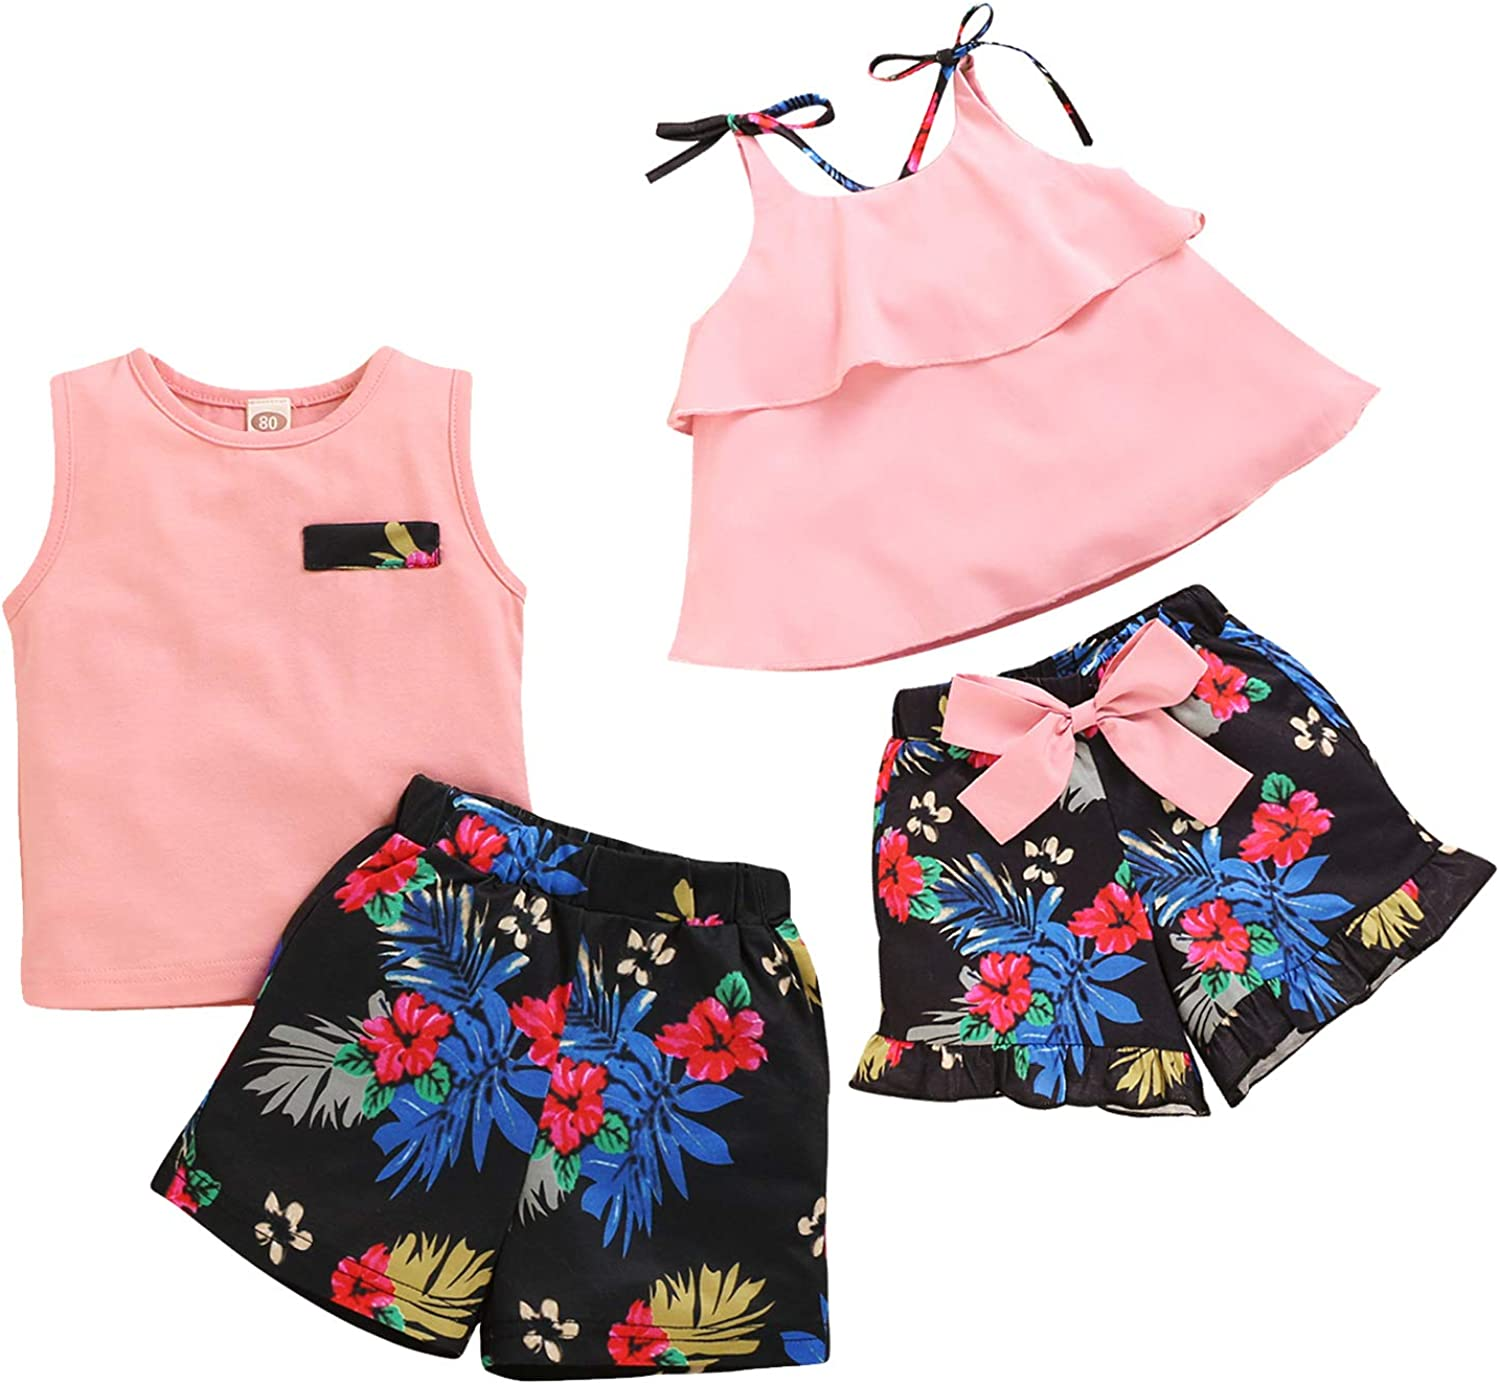 Short Pant 2pcs Cute Outfits Baby Summer Toddler Girls Clothes Short Sleeve Vest